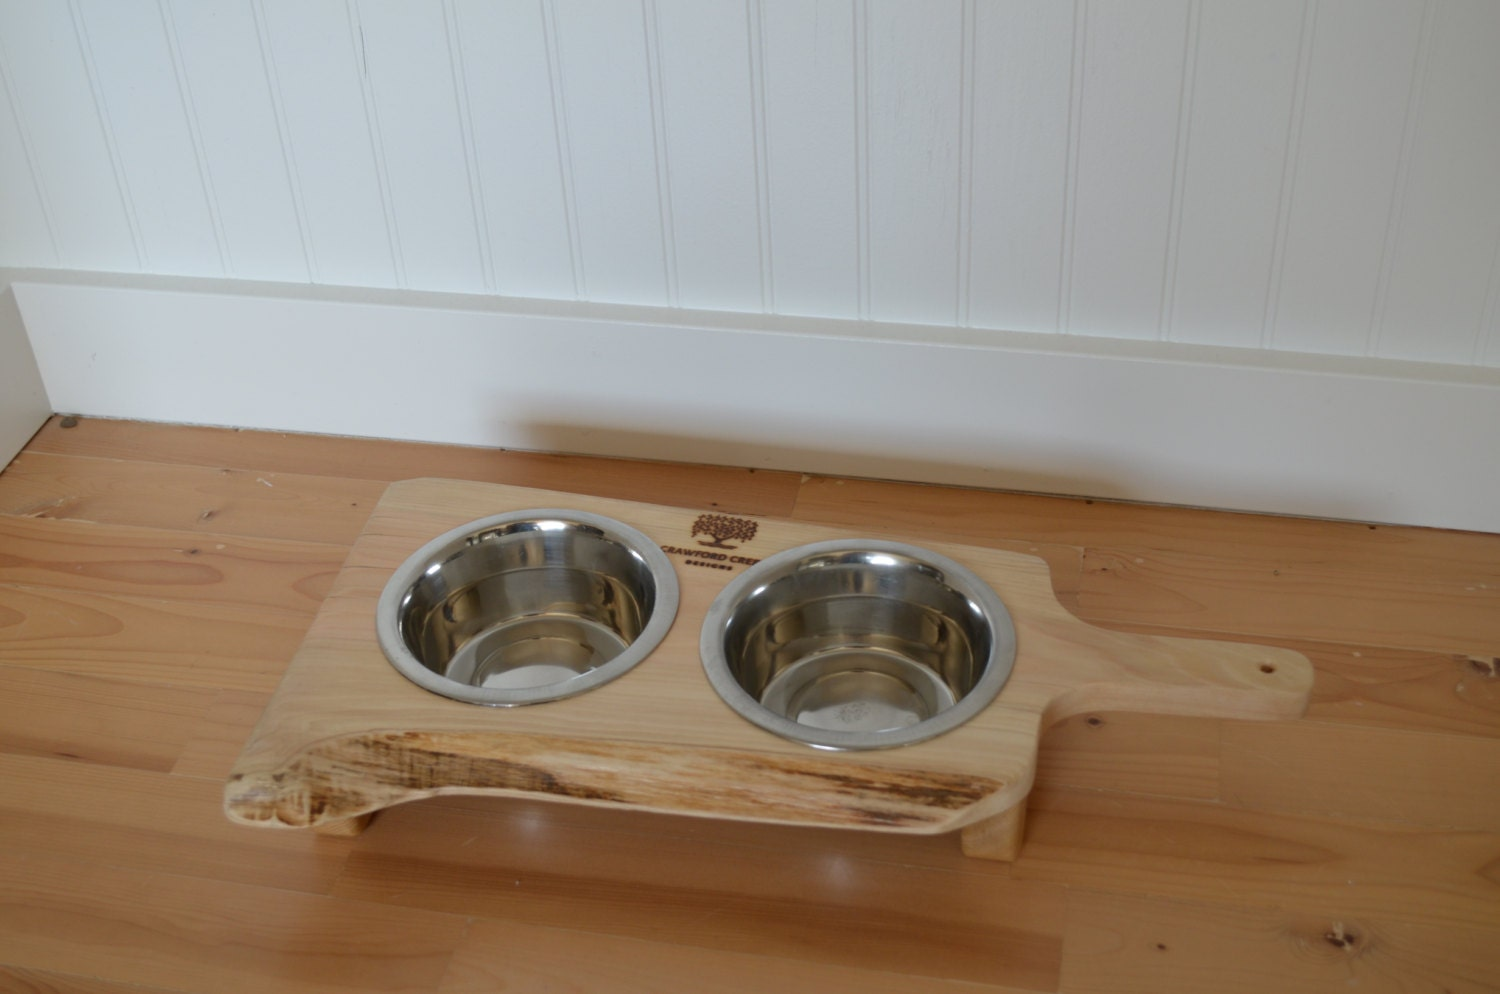 Cedar Beautiful Wood Decor With Two Stainless Steel Pet Bowls